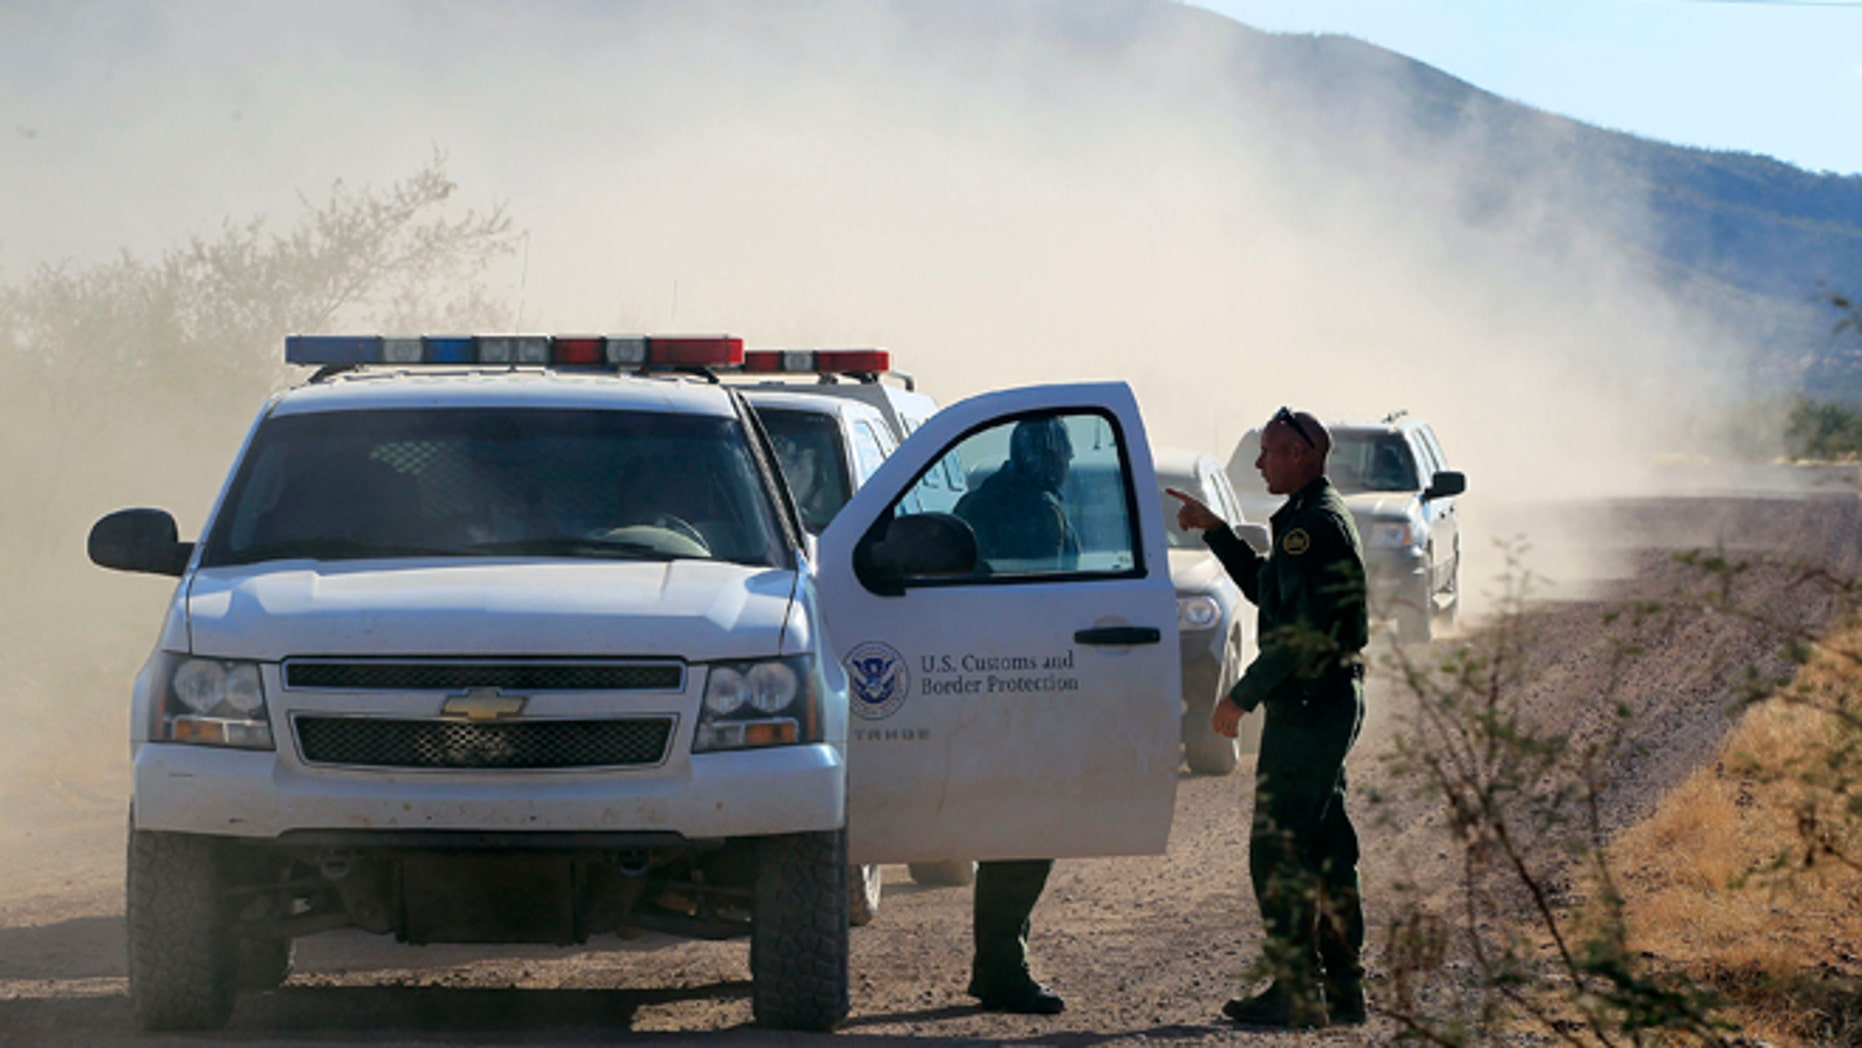 FILE - In this Oct. 2, 1012 file photo, U.S. Customs and Border Protection officers and other law enforcement jurisdictions drive the roads near near Bisbee, Ariz. New Homeland Security Secretary Jeh Johnson is reviewing the department's use of force policies, a Homeland Security official said Friday. The official said Johnson has been reviewing the rules about when agents along the border can use their guns since he took office in December. (AP Photo/Ross D. Franklin, file)